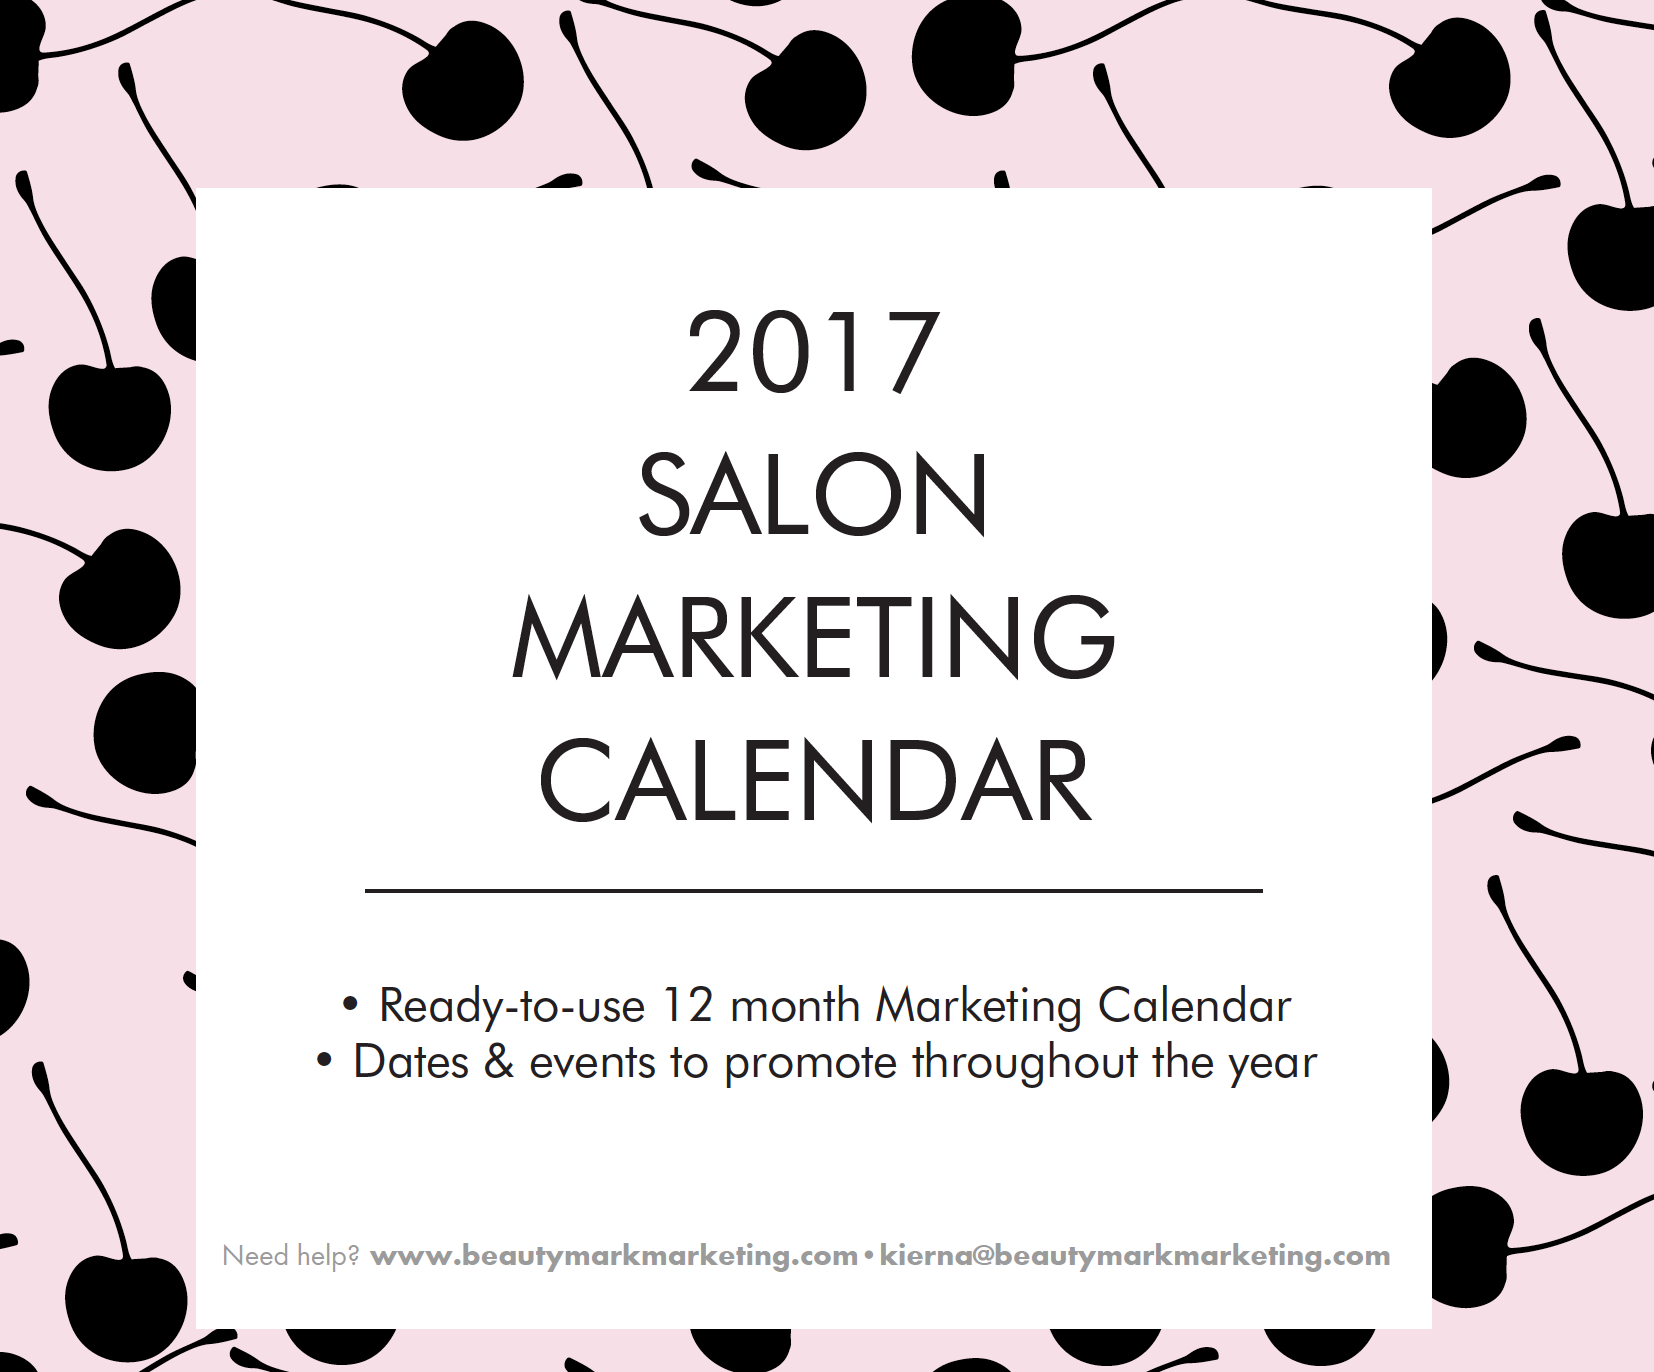 2017 salon marketing calendar